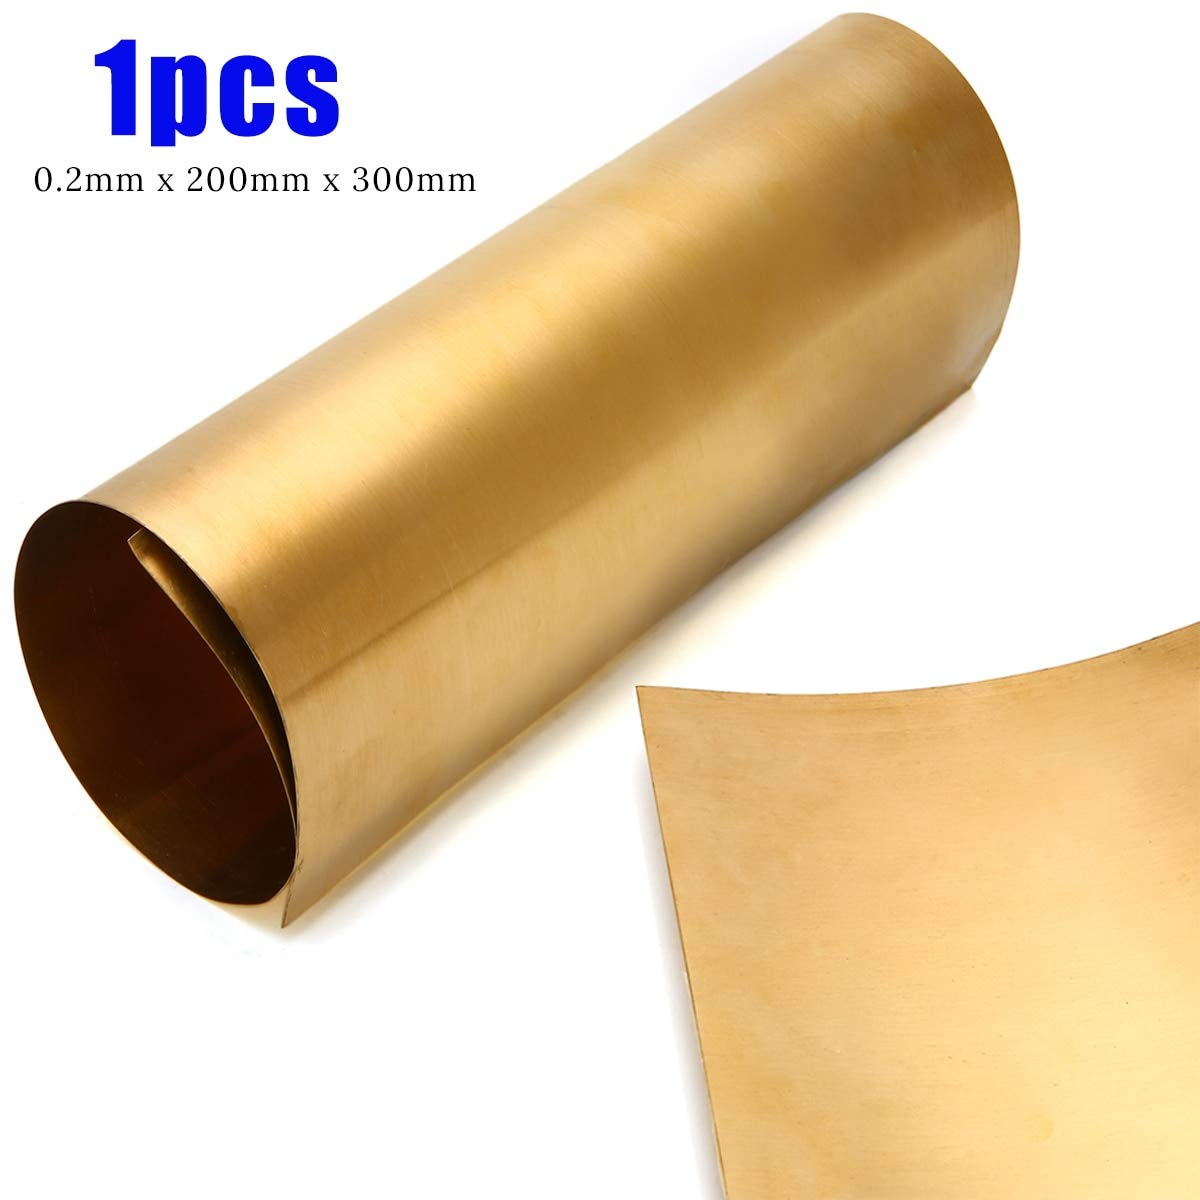 1pc Brass Sheet Mayitr Brass Metal Thin Sheet Foil Plate Shim with Corrosion-Resistant for Metalworking 0.2 x 200 x 300mm